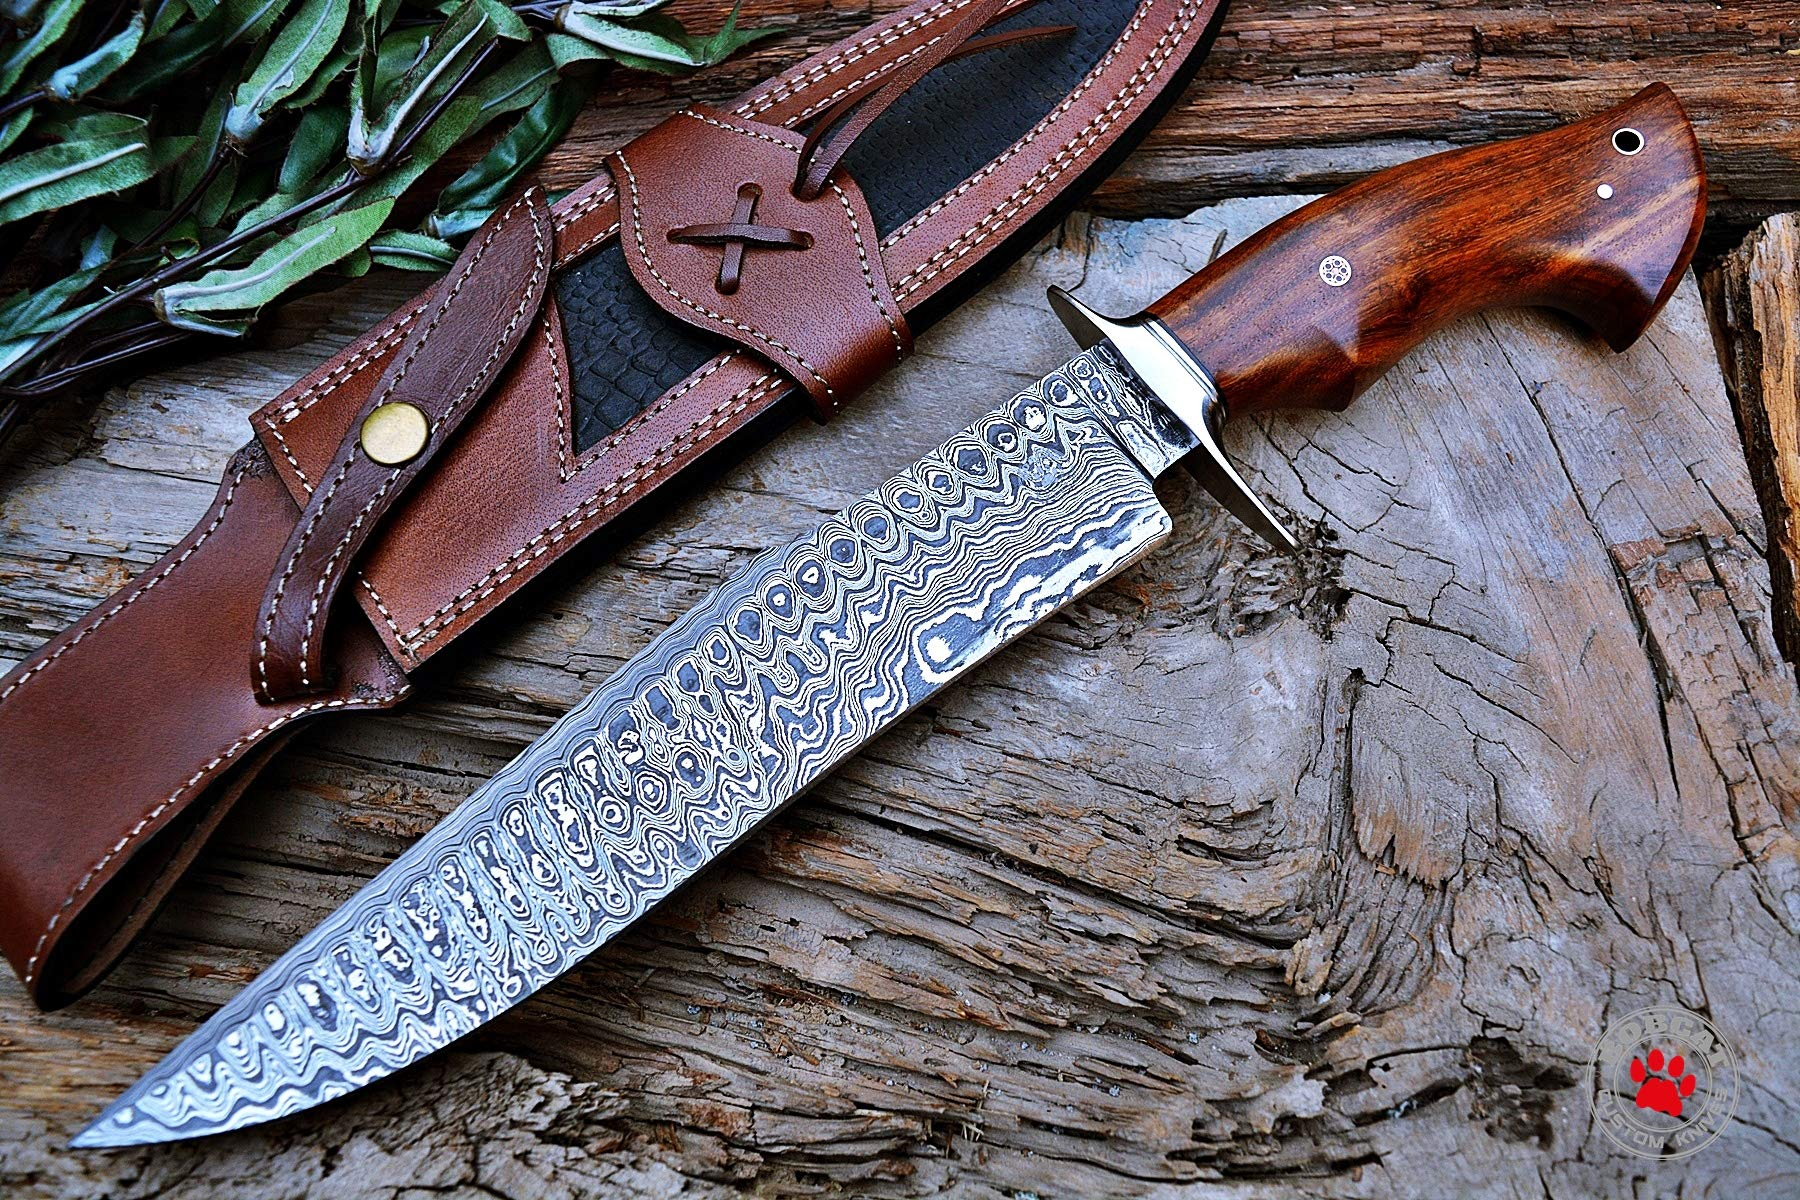 Custom Handmade Bowie Knife Hunting Knife Promotional Price Full Tang Damascus Steel 10'' Solid Walnut Wood Handle with Nice Sheath by Bobcat Knives (Image #1)